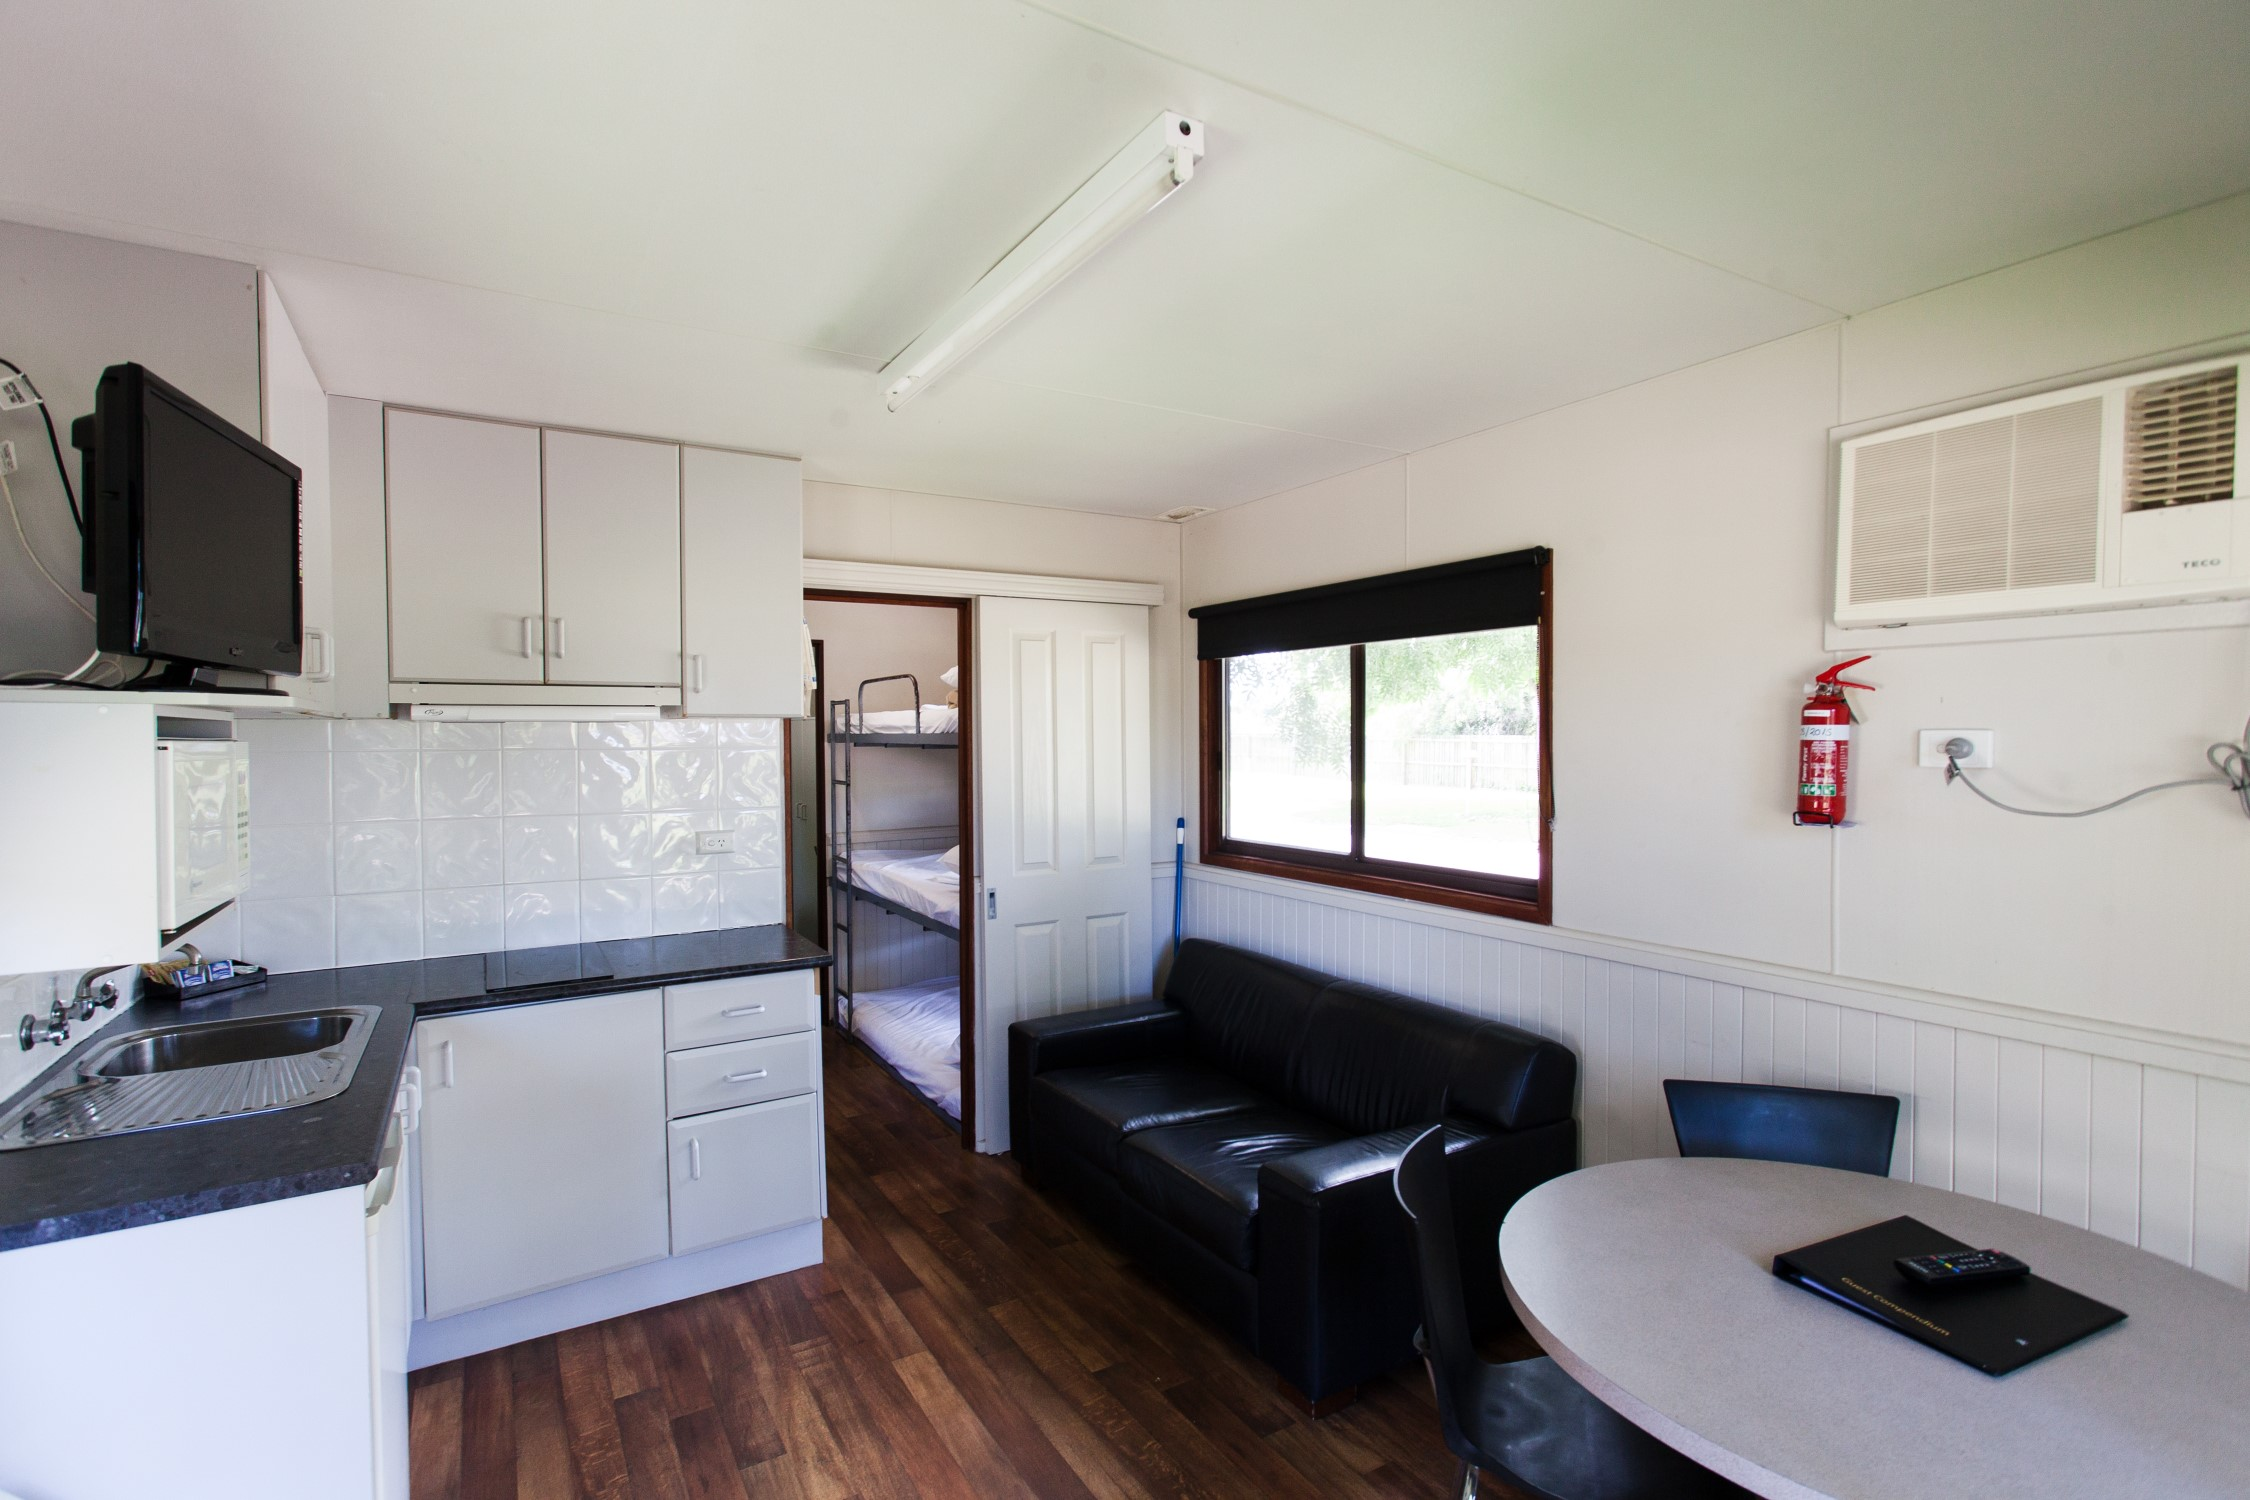 NRMA Bairnsdale Riverside Holiday Park - Bairnsdale photo 4